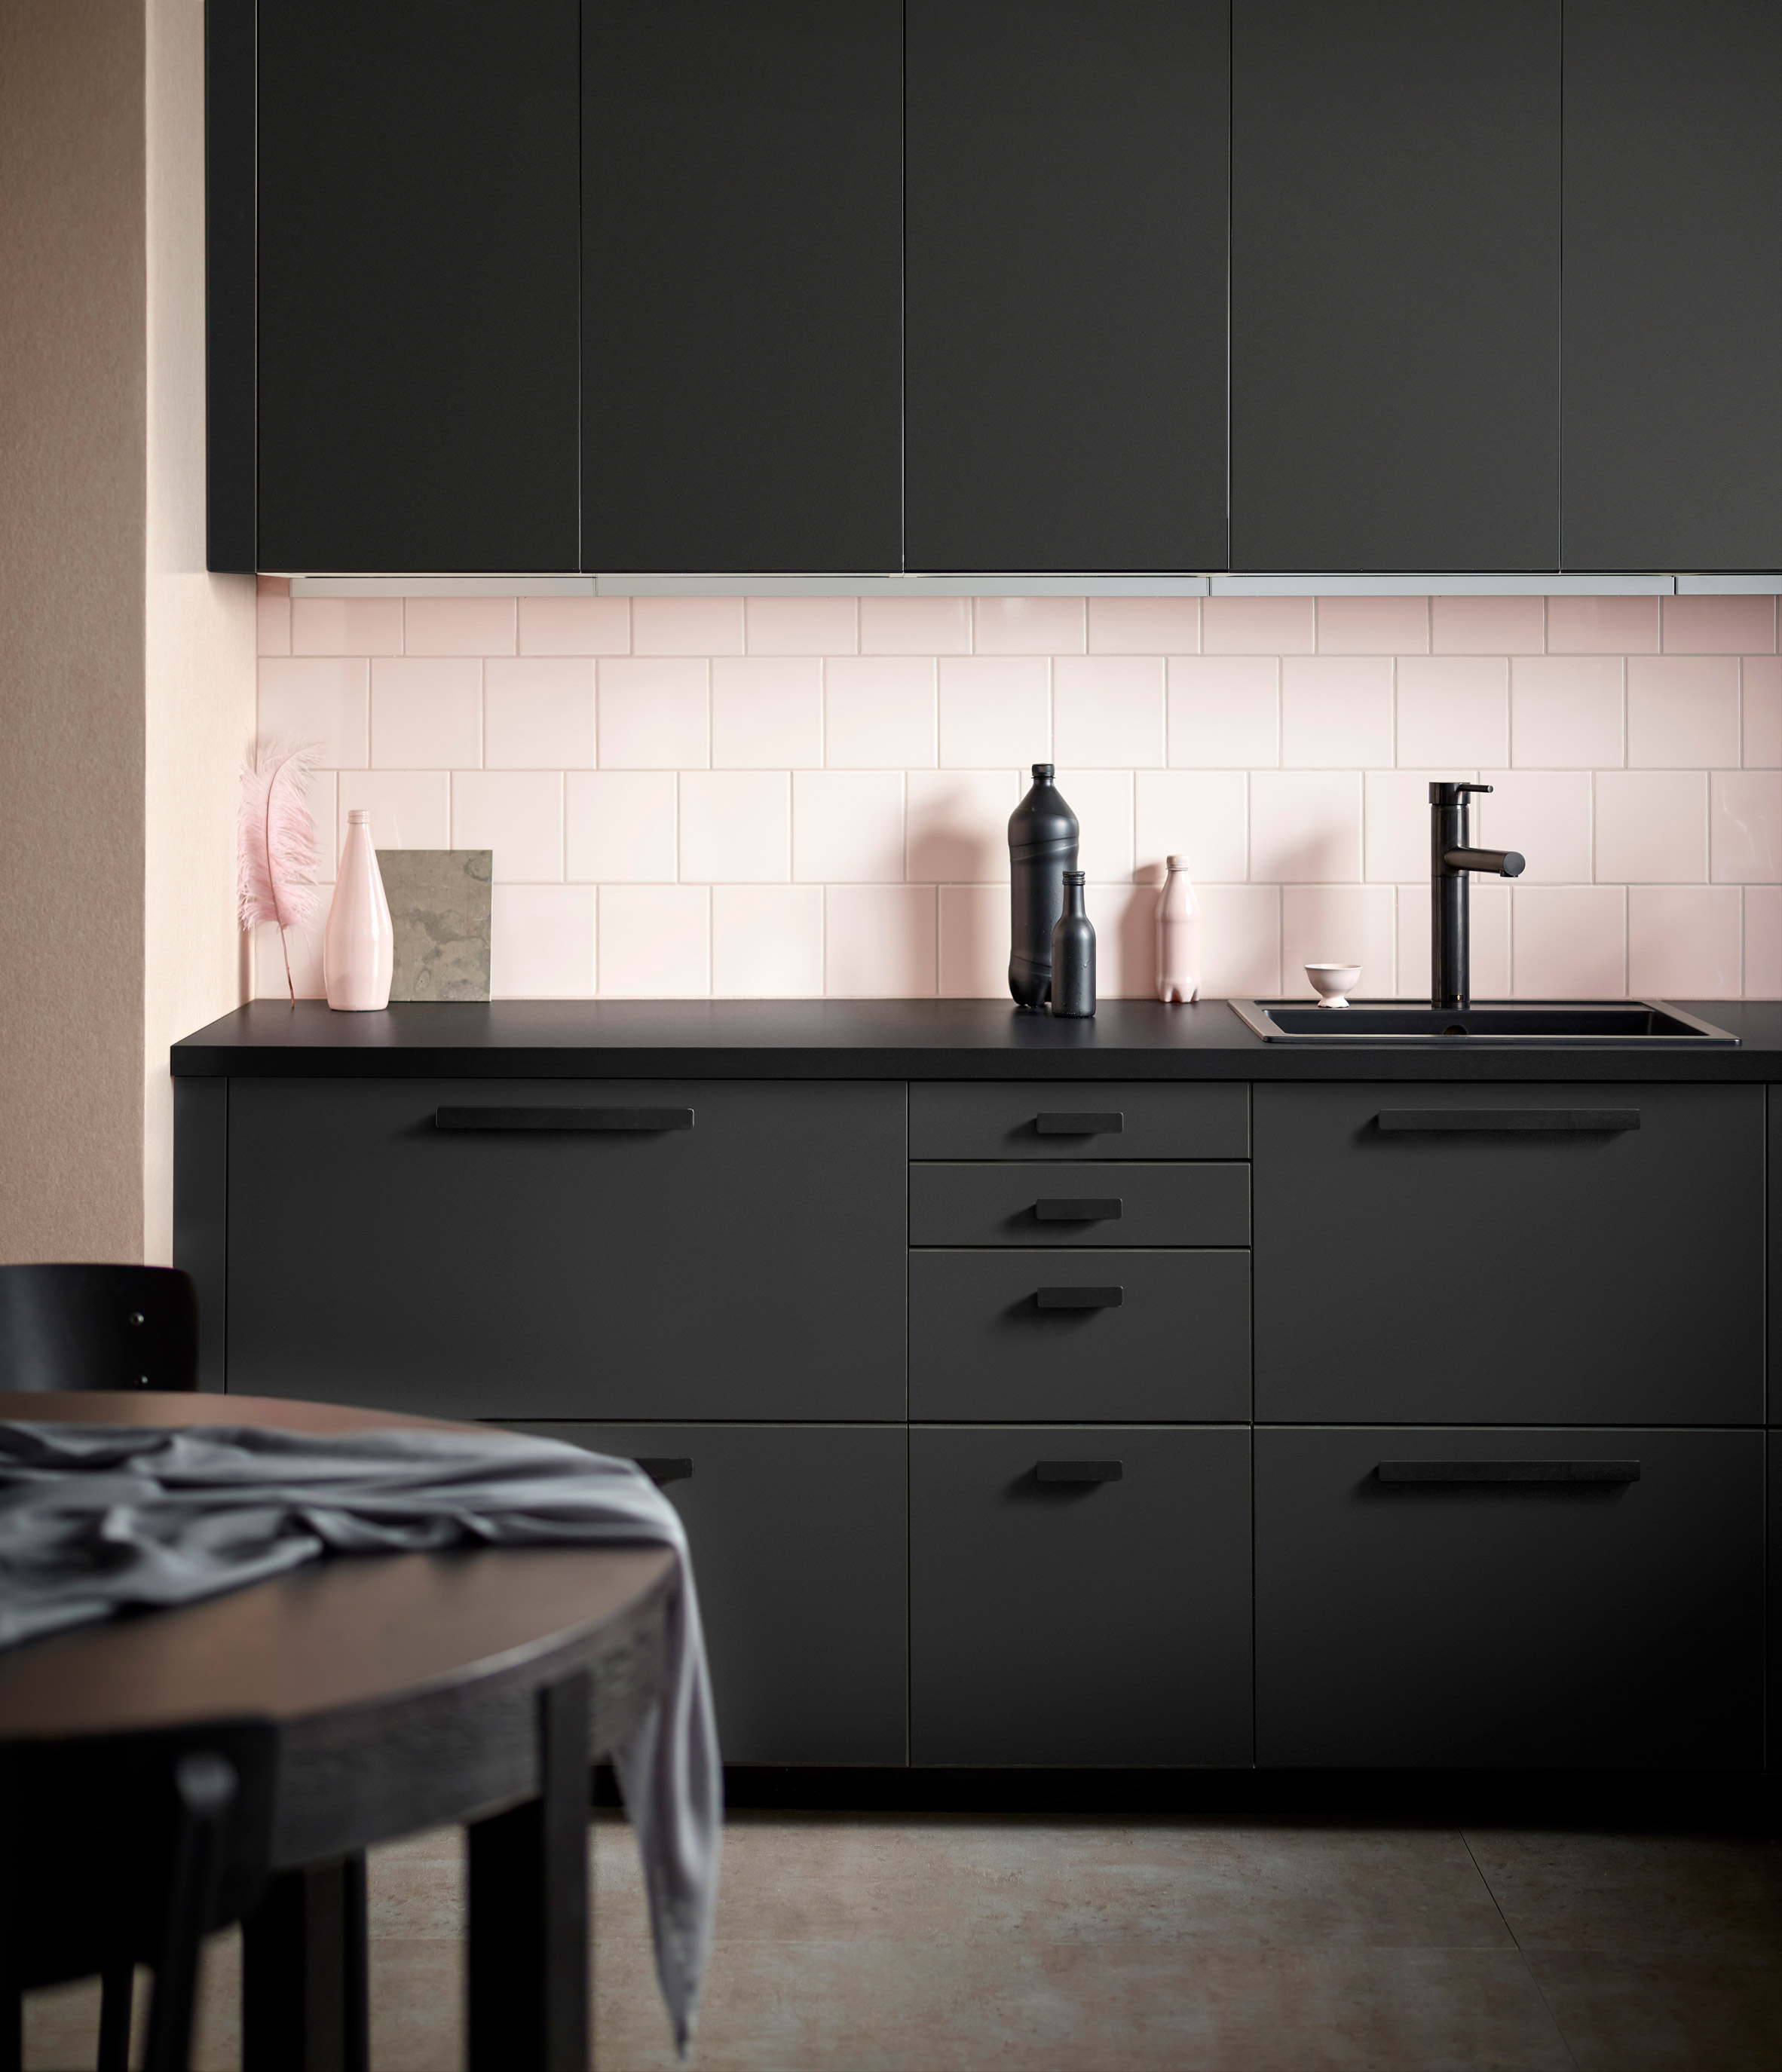 Ikeas New Kitchen System Is Made From Plastic Bottles